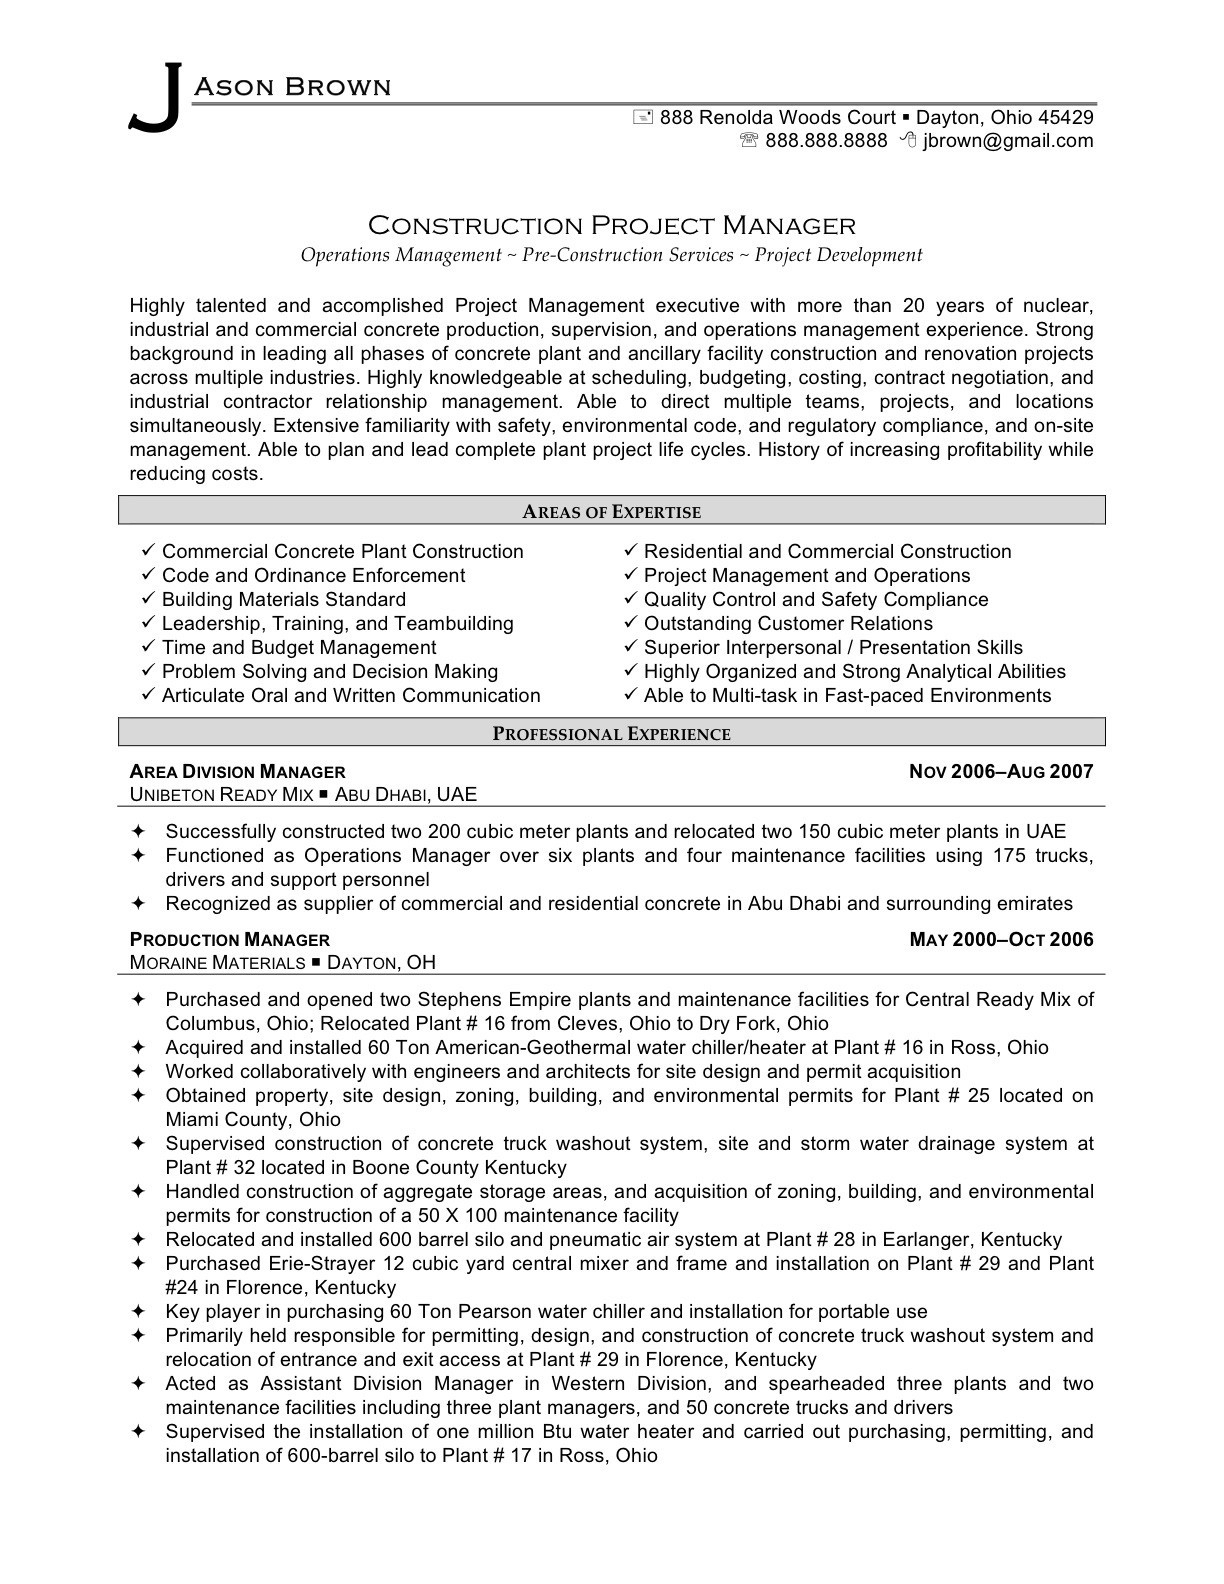 Resume Template for Construction Project Manager - Project Manager Core Petencies Resume Examples Example Updated